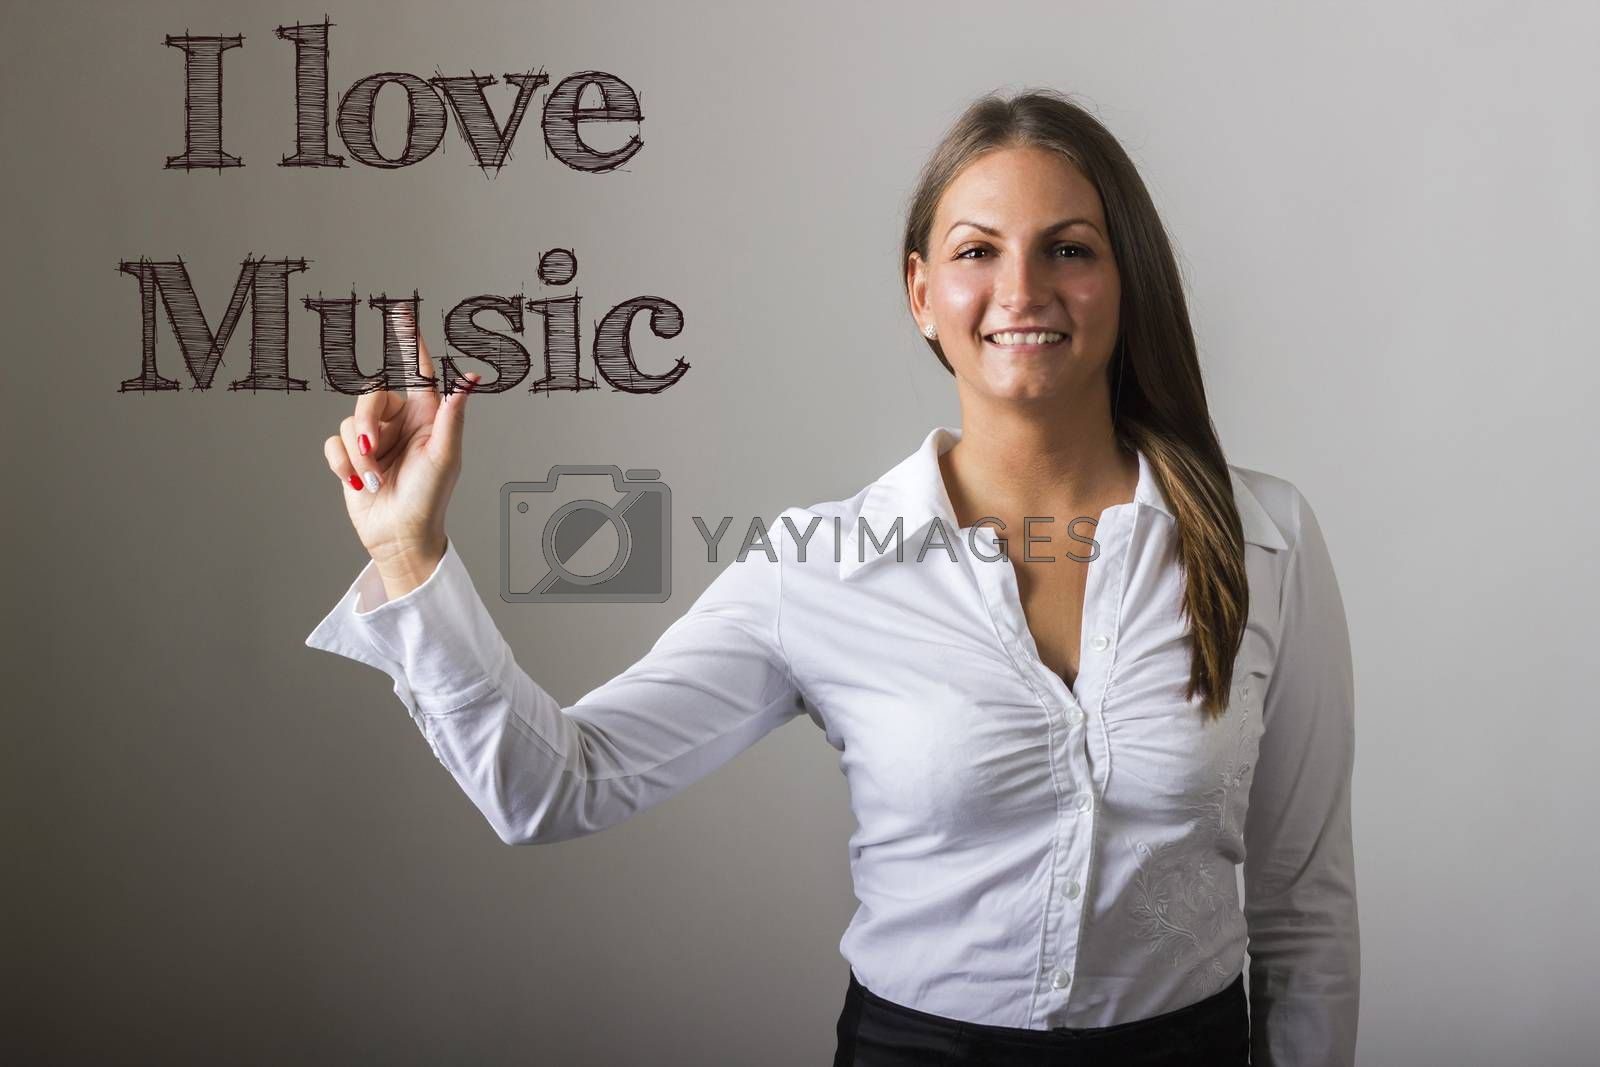 I love Music - Beautiful girl touching text on transparent surface - horizontal image